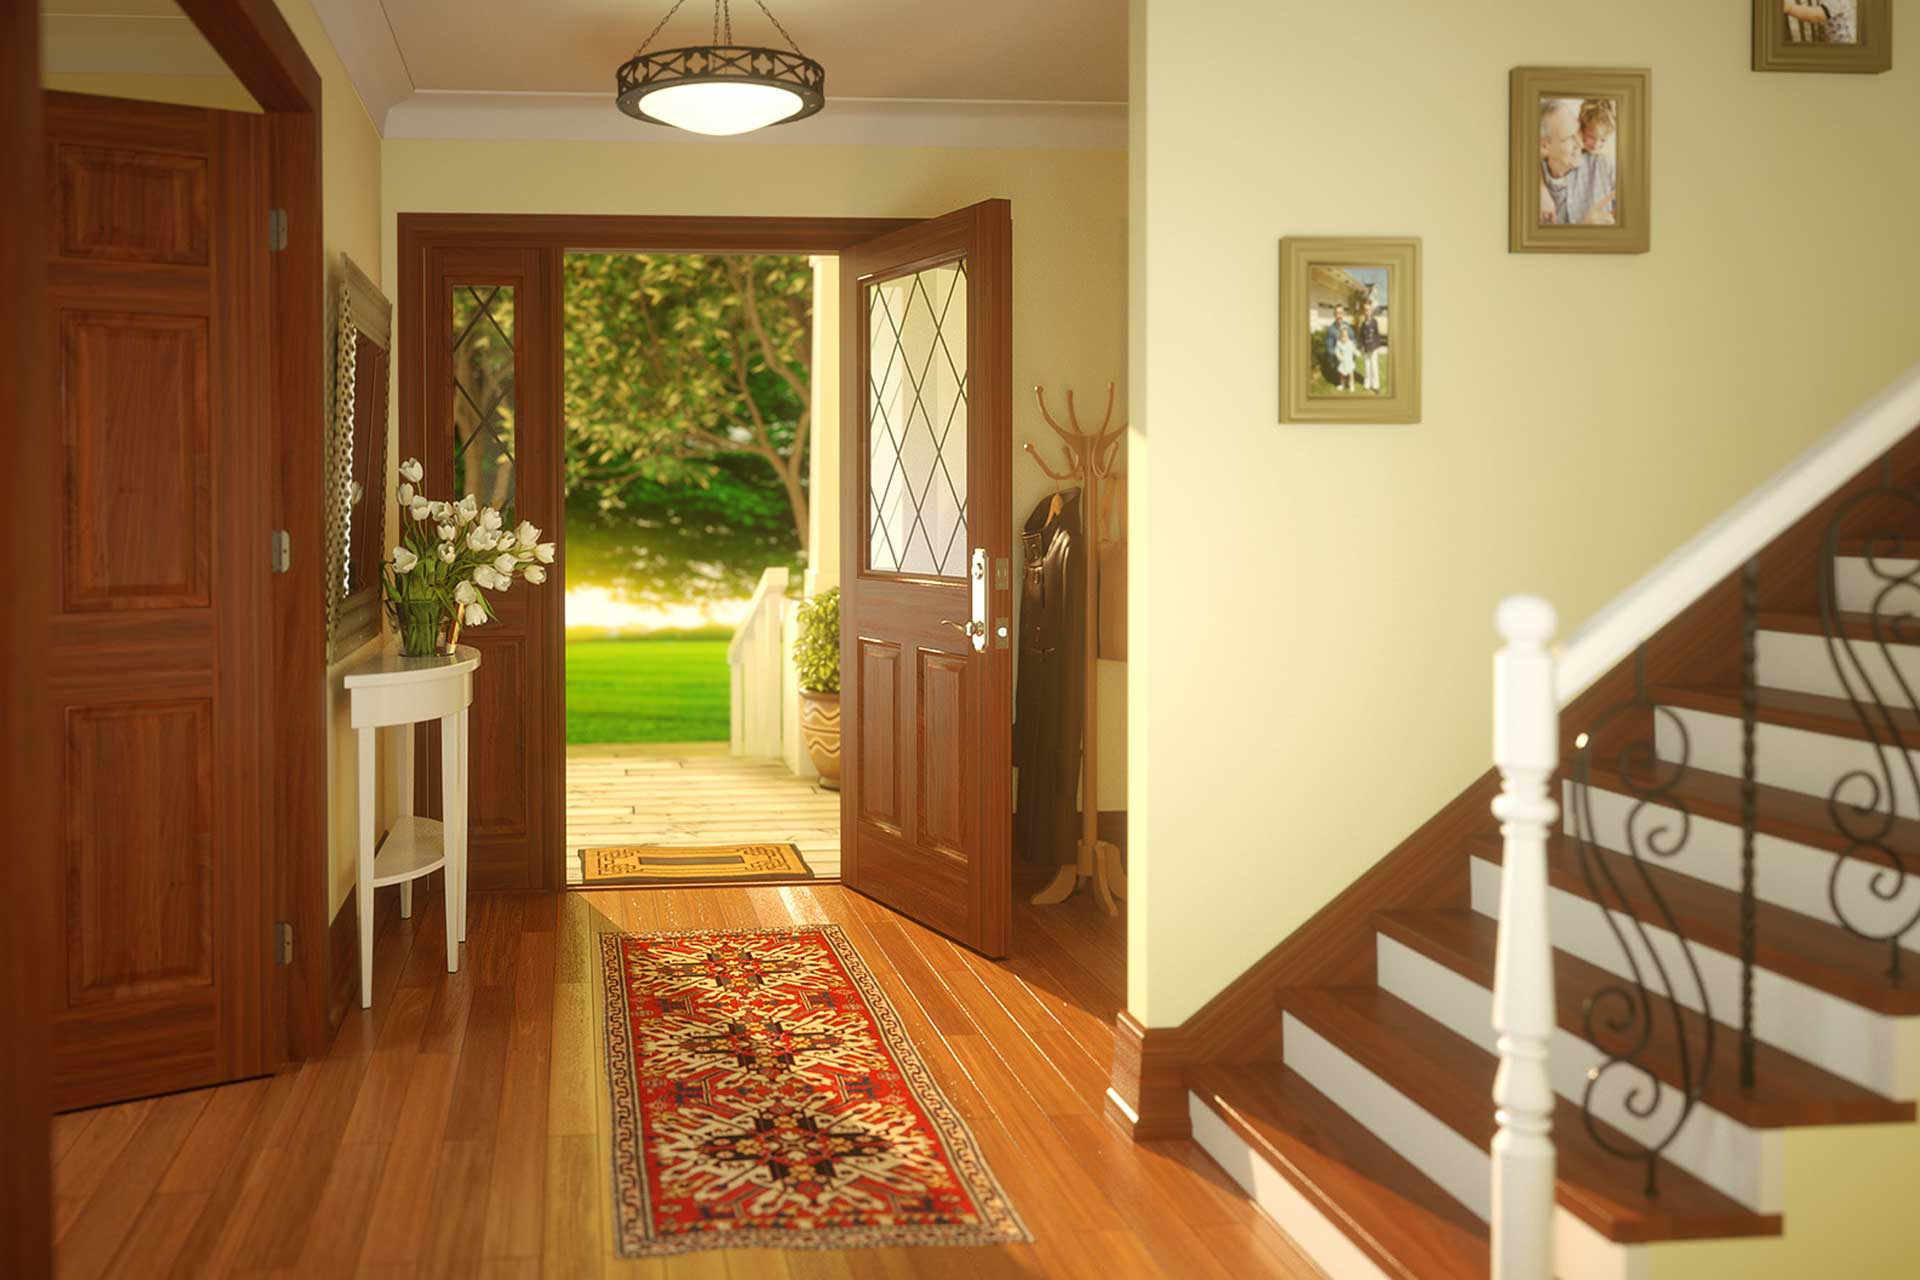 Front door view from inside a home with golden light